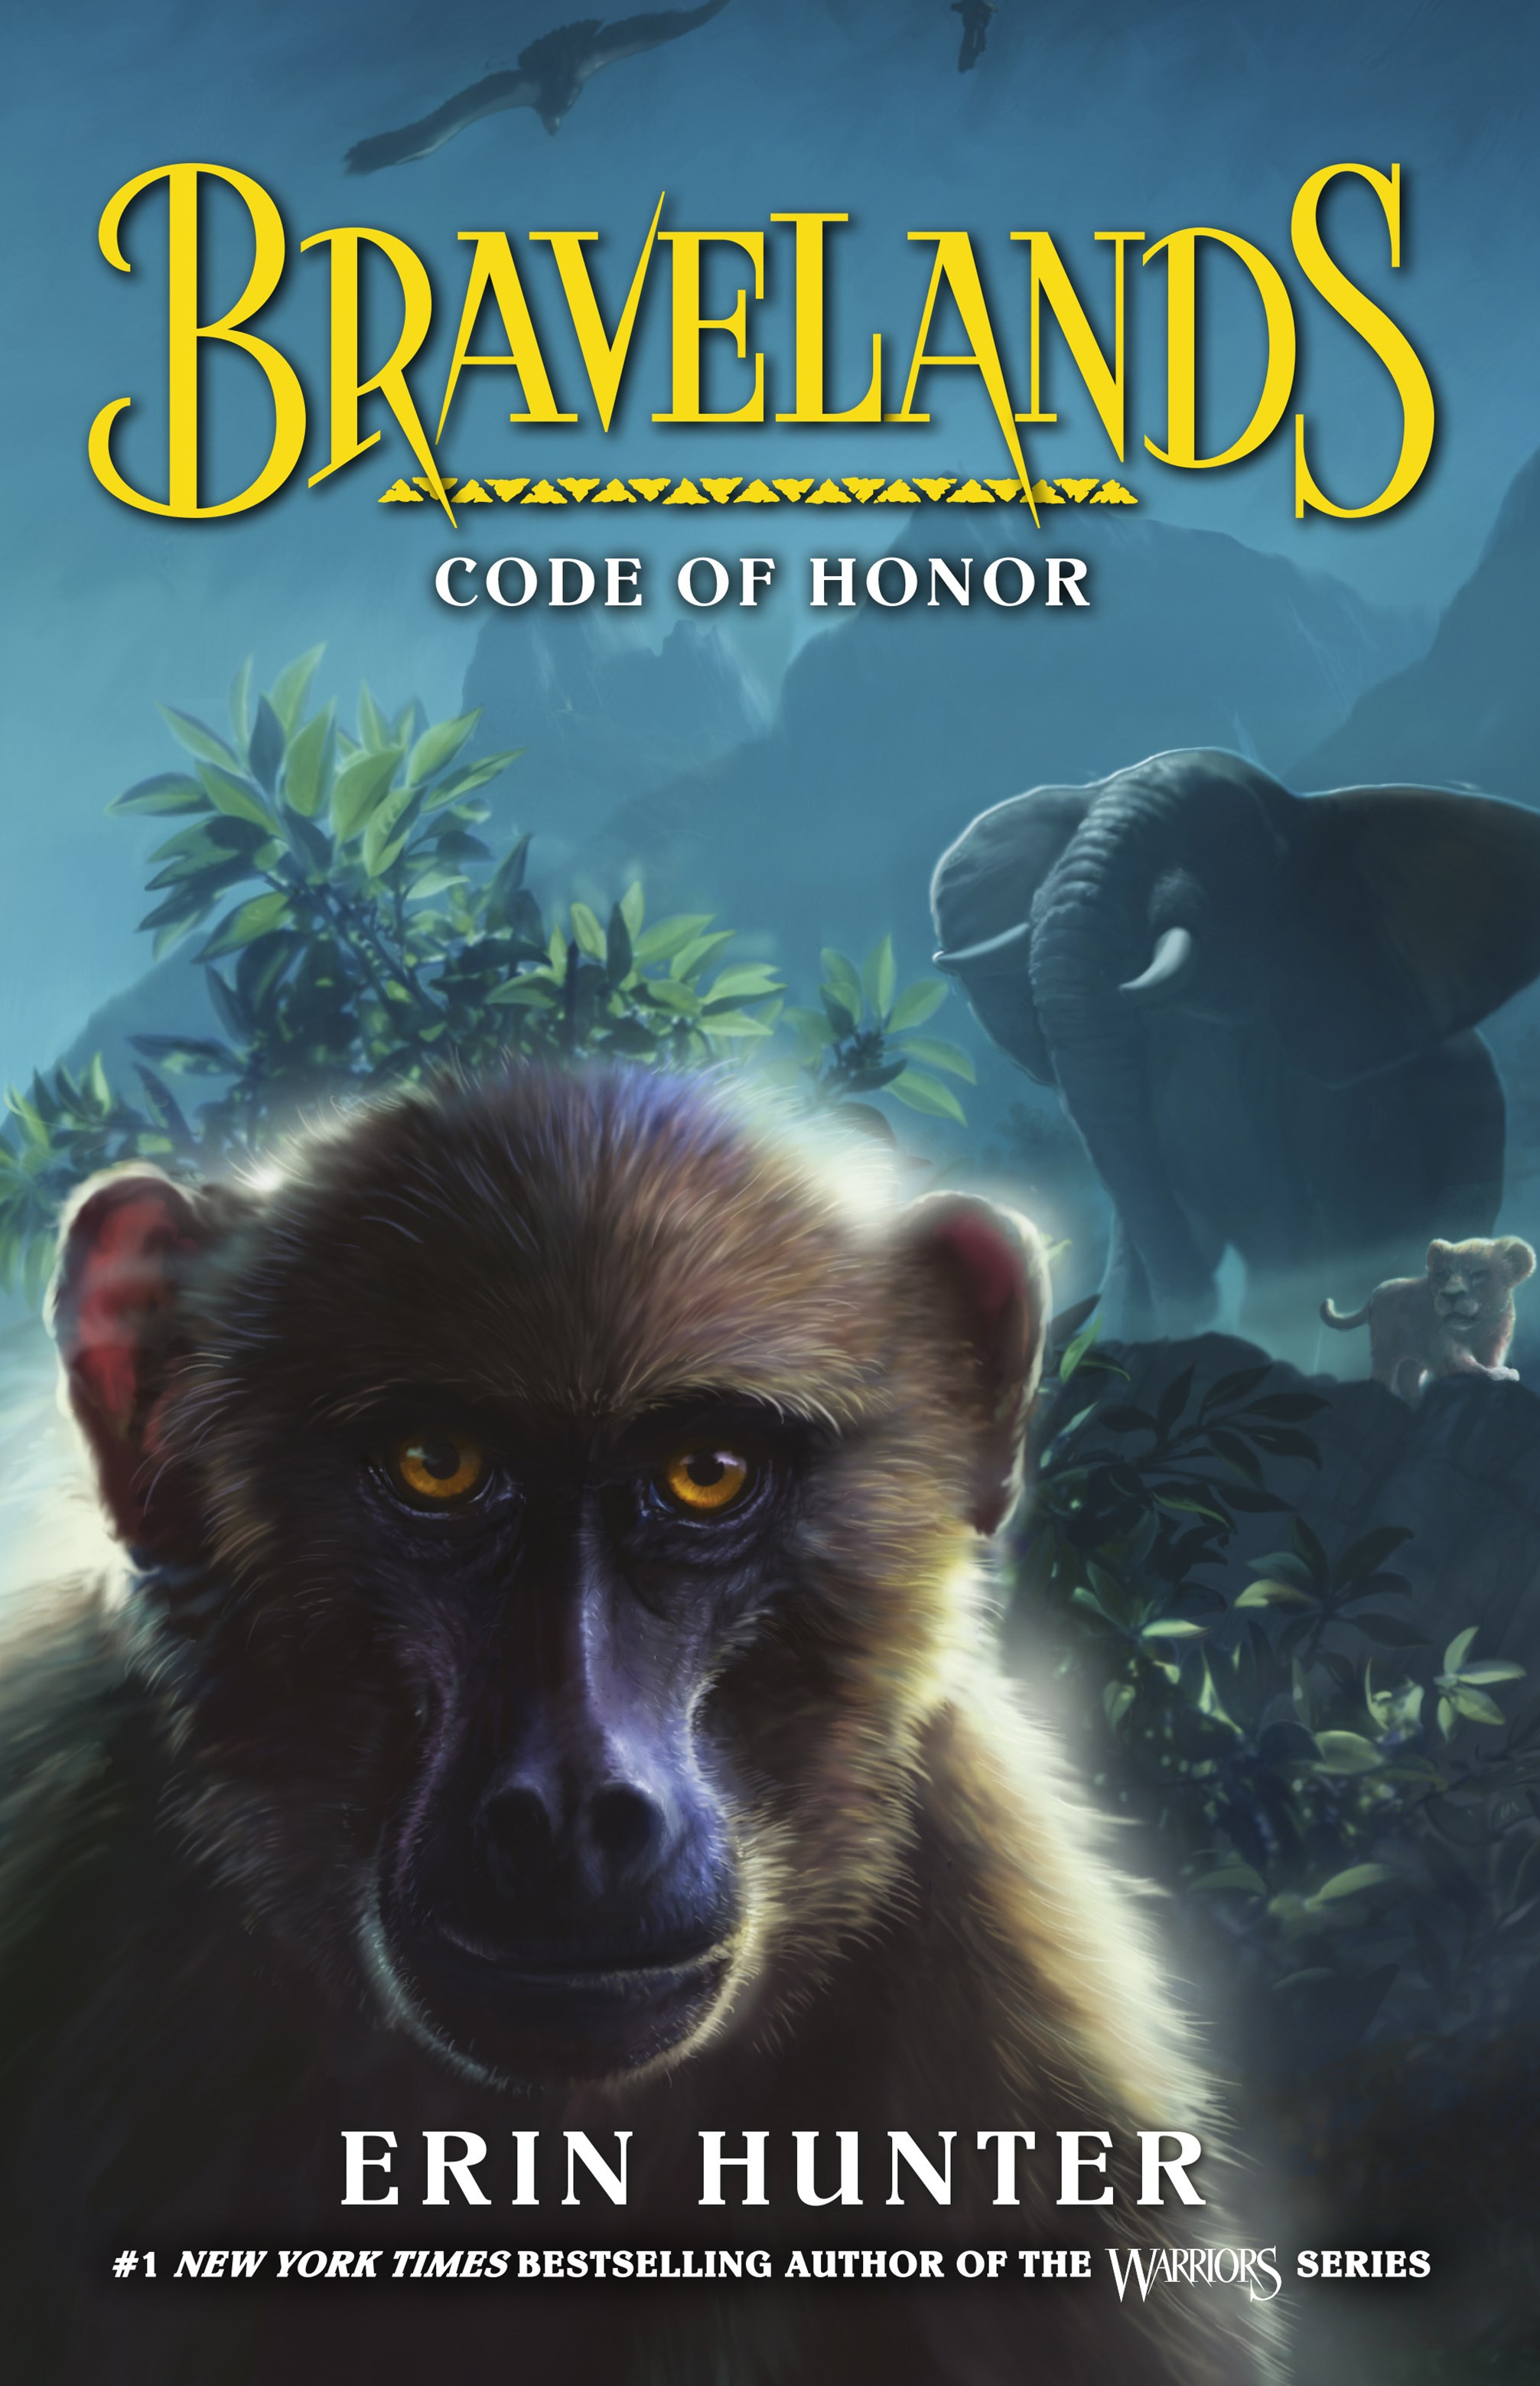 Bravelands: Code of Honor